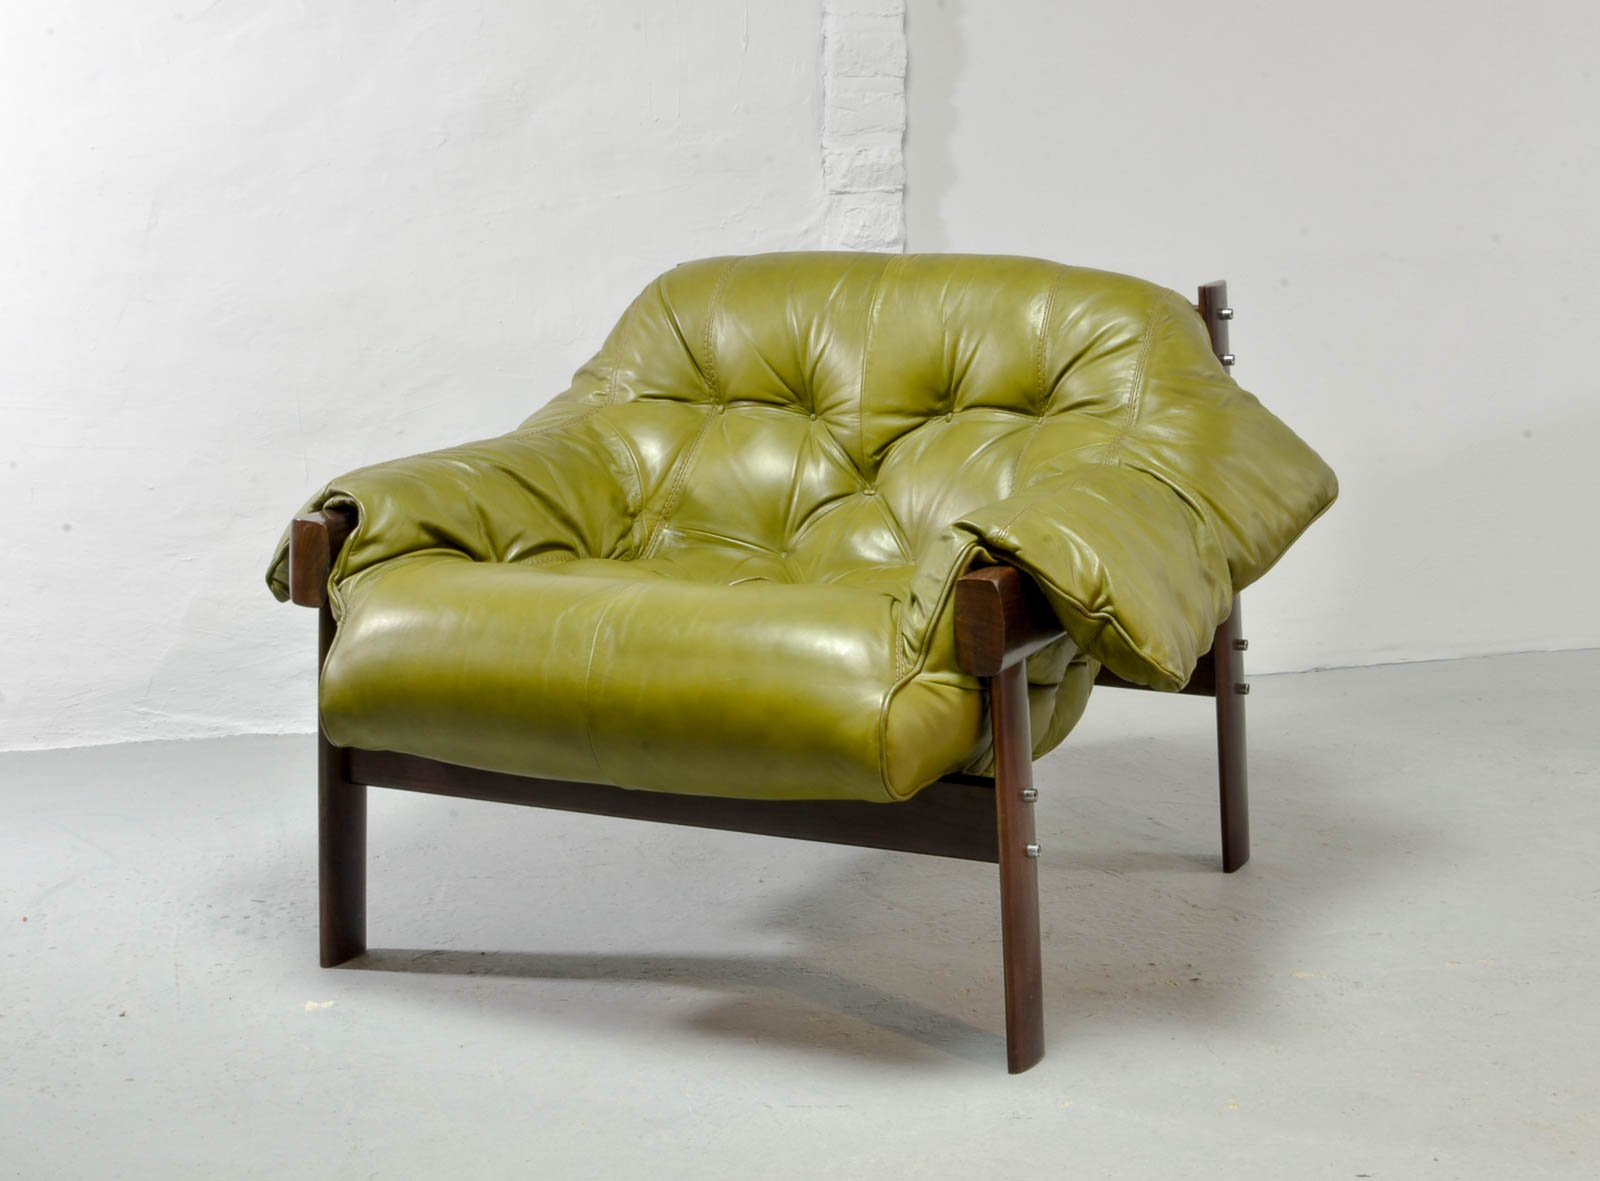 Olive Green Leather Lounge Chairs & Ottoman By Percival Lafer, 1960s For Sale At Pamono